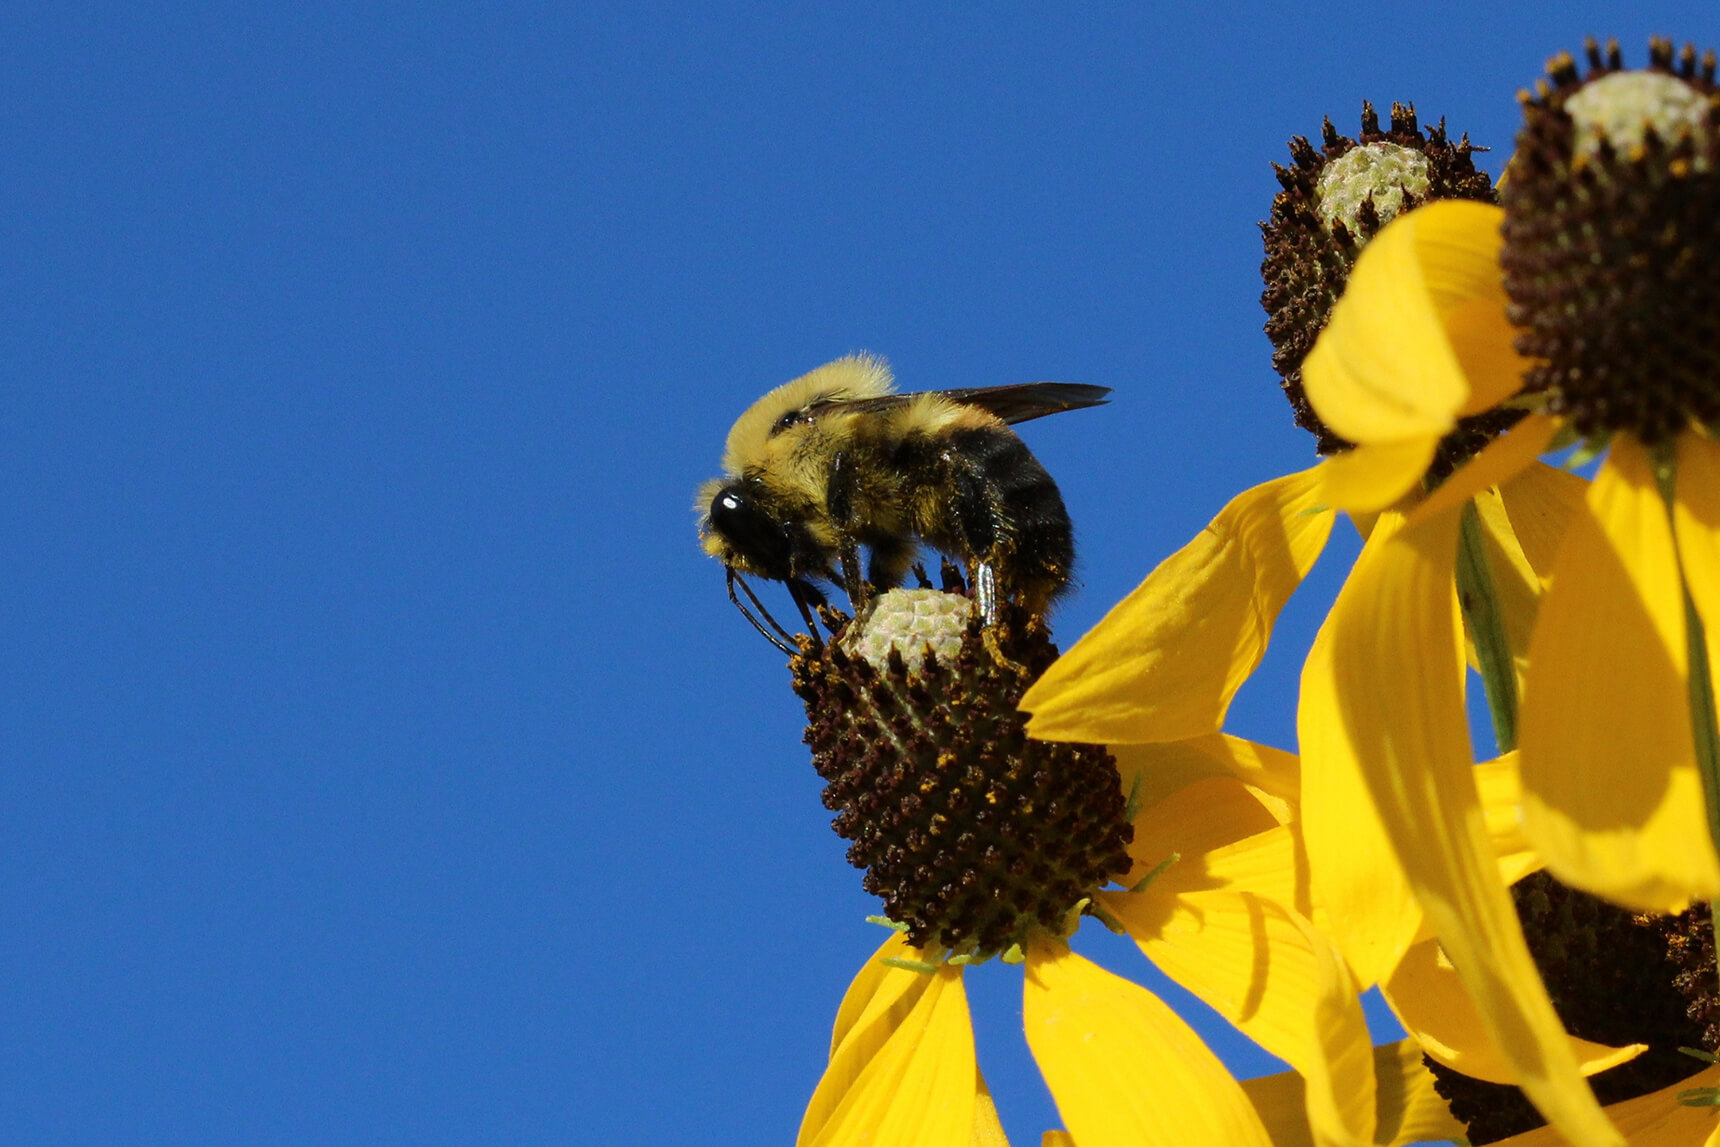 Bumblebee (Bombus griseocollis) atop a yellow flower set against a blue sky